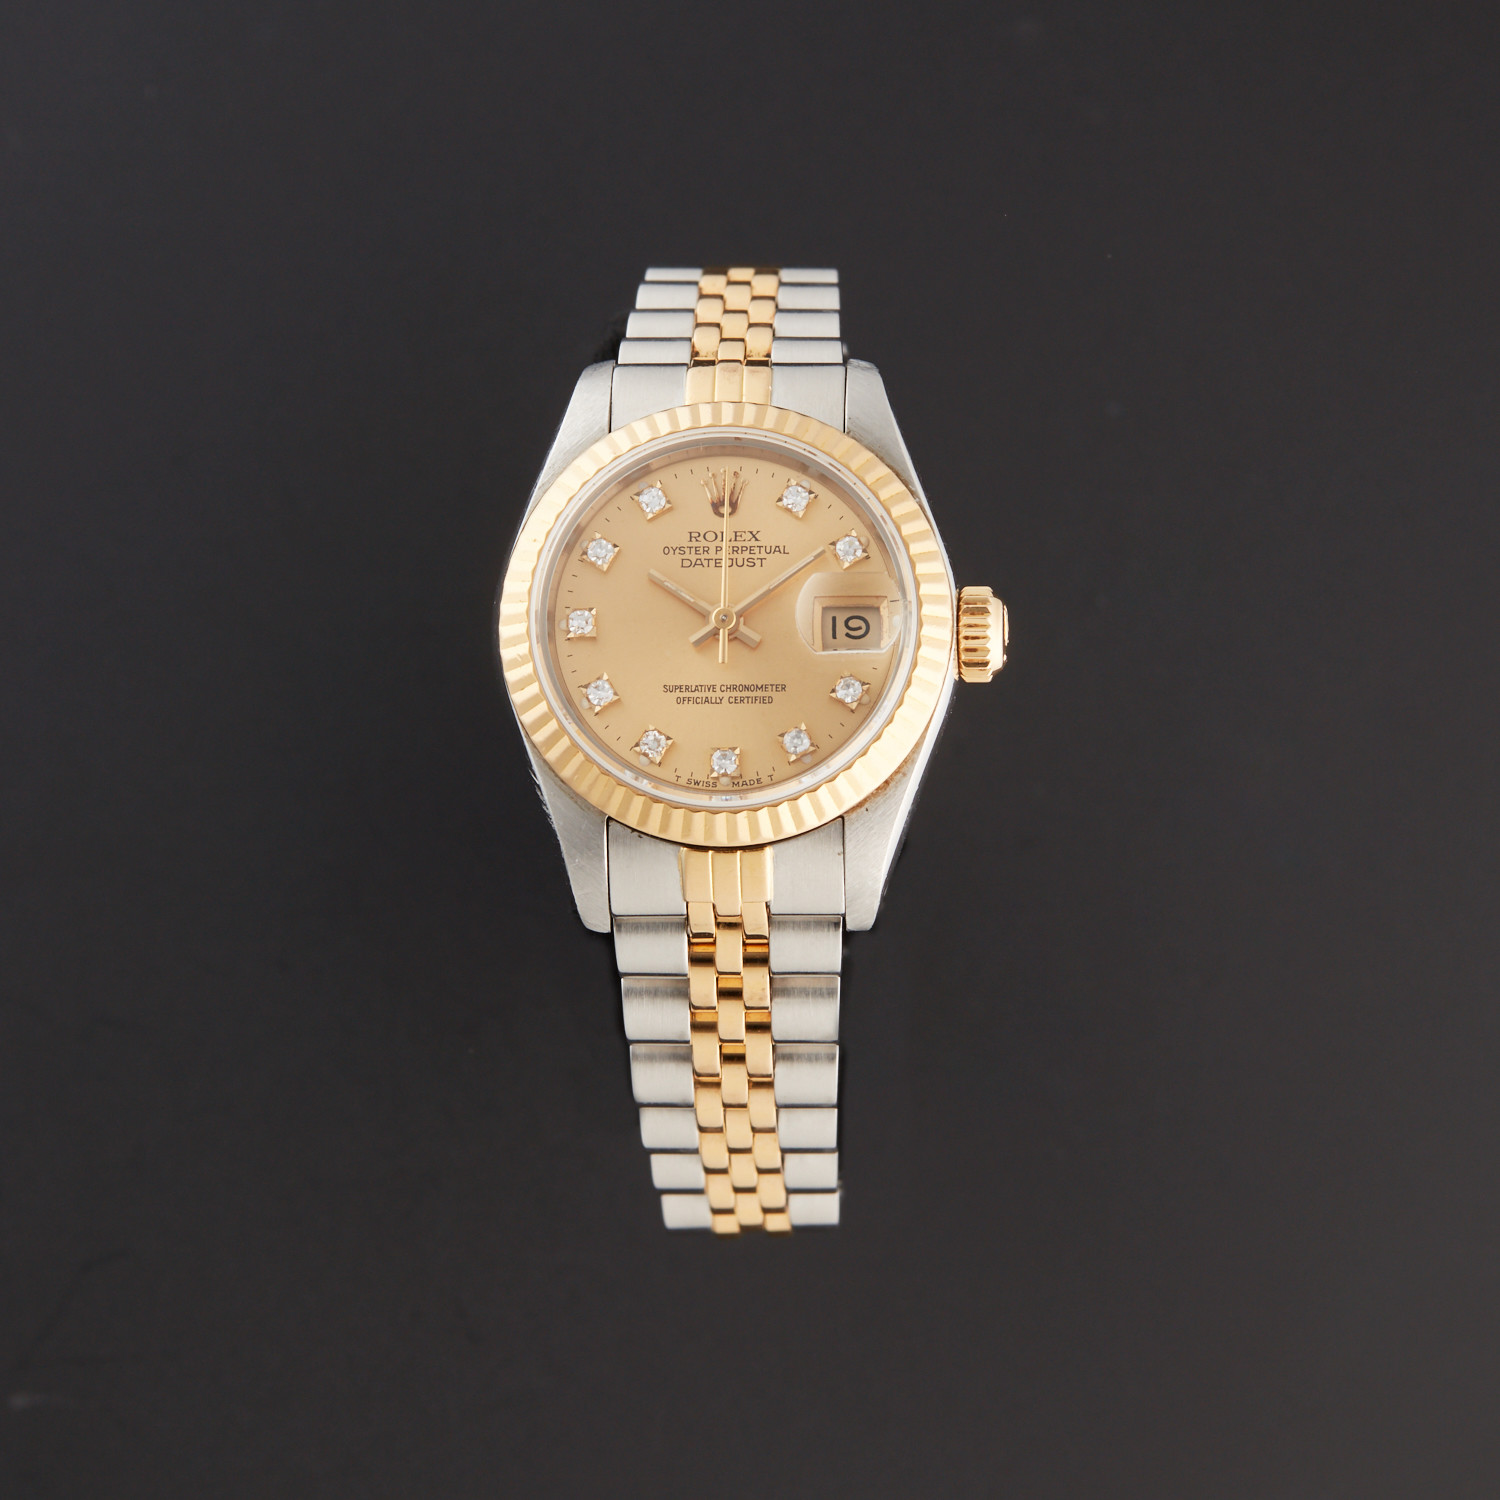 competitive price 69dde d5cd7 Rolex Ladies Datejust Automatic // 69173G // Pre-Owned ...